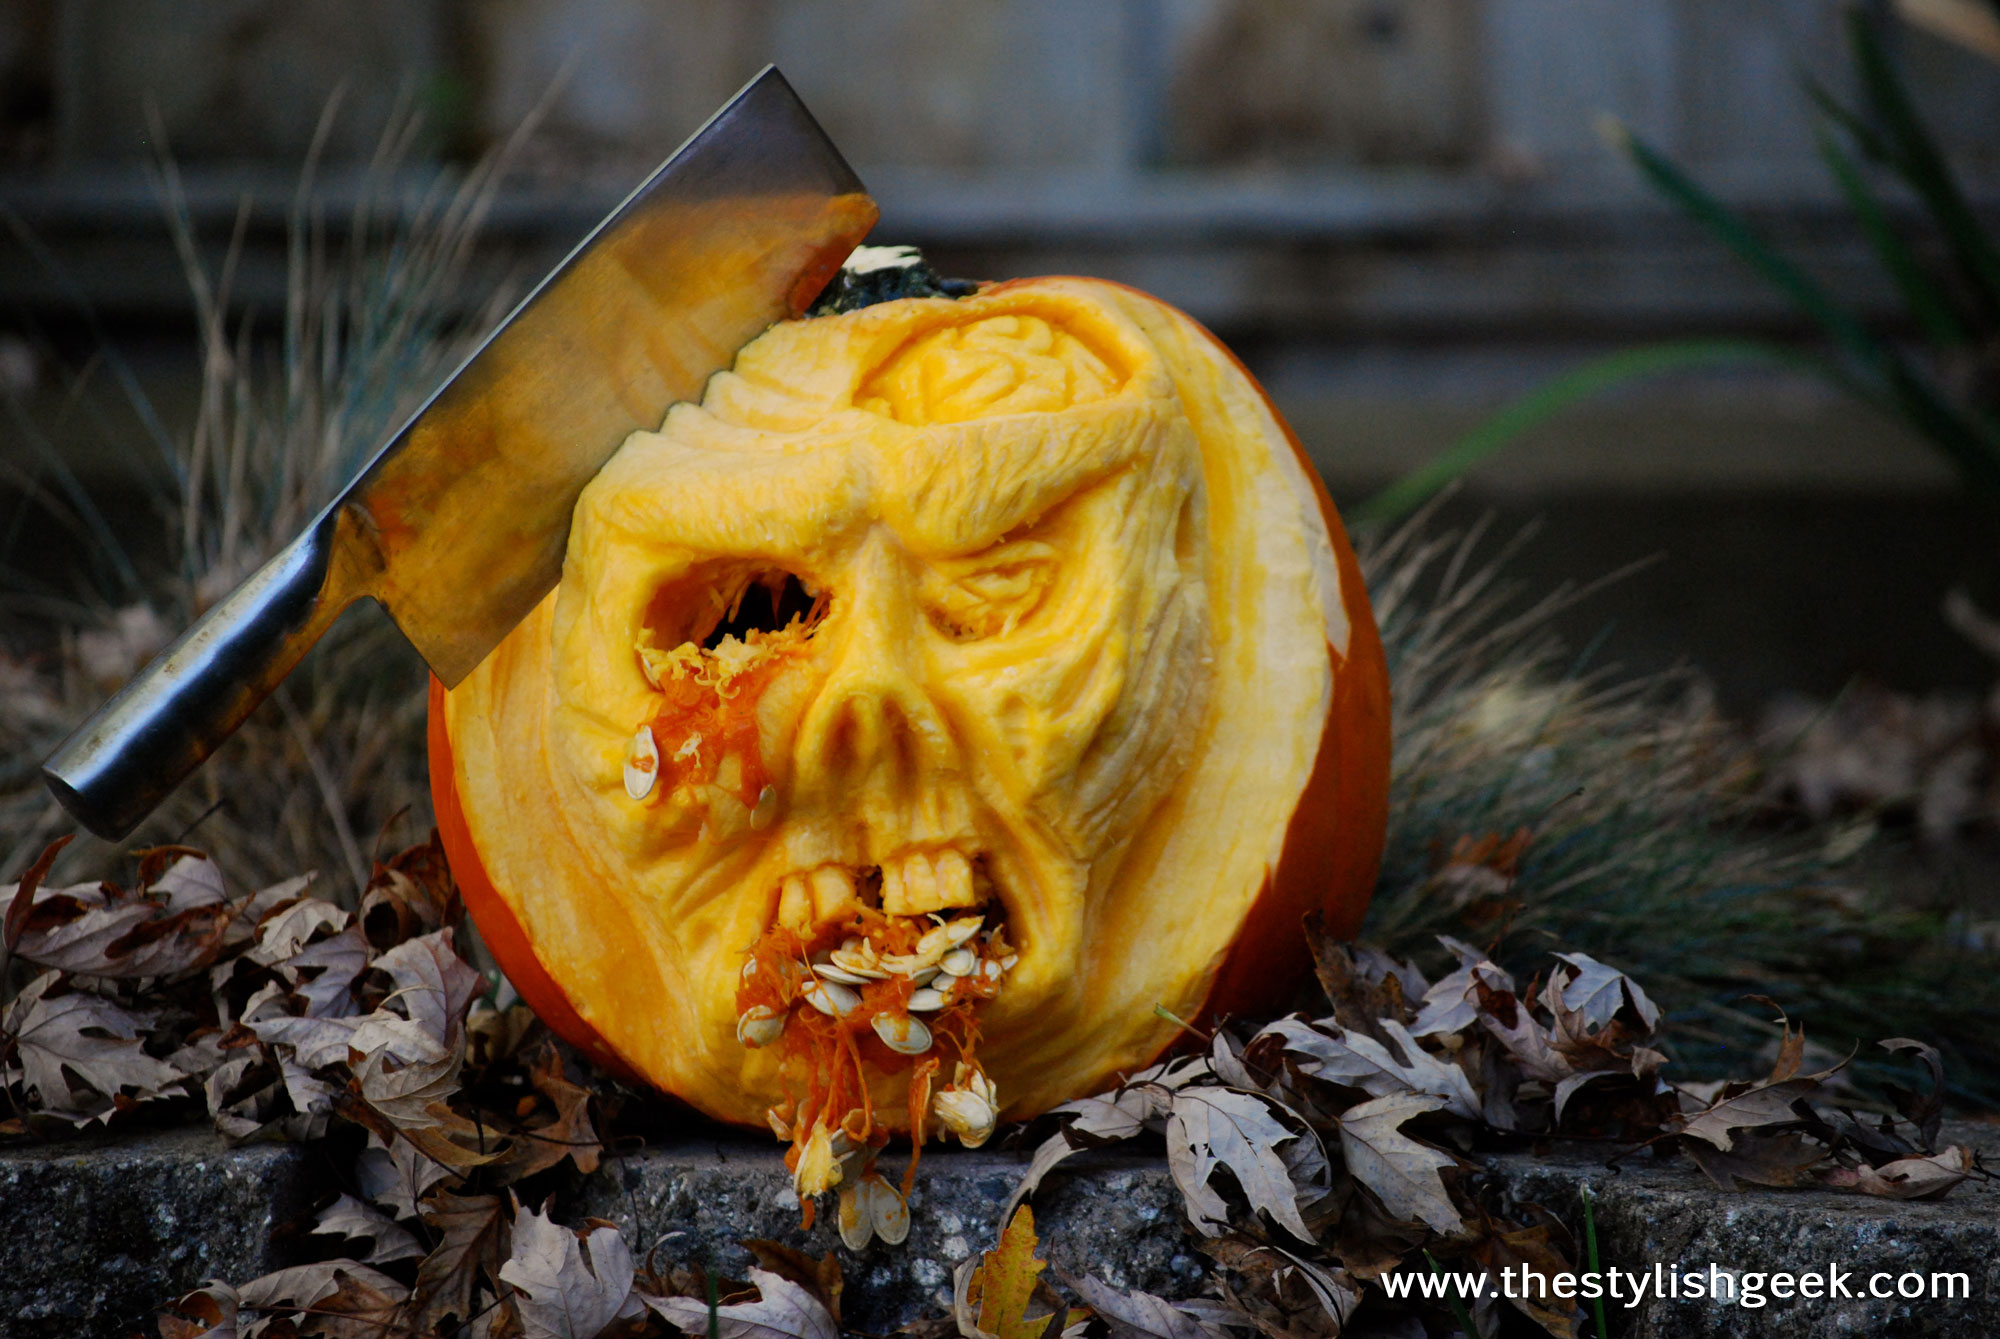 Walking Dead inspired zombie pumpkin